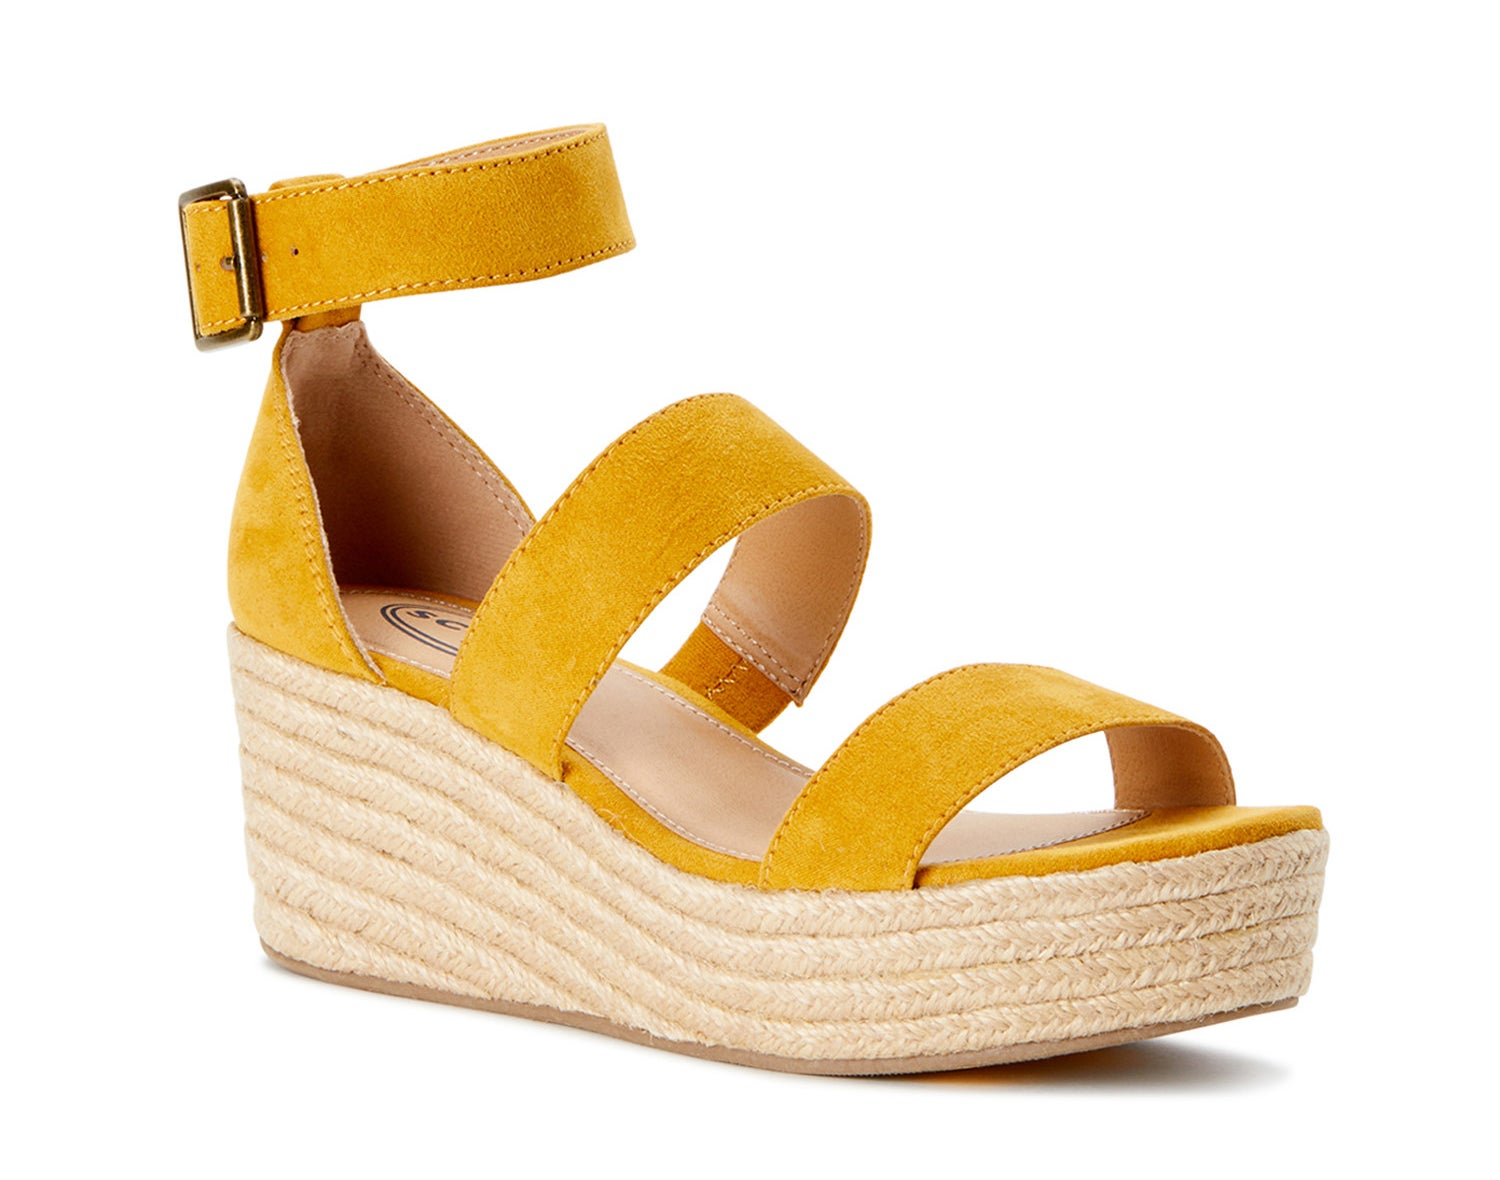 A sunflower yellow wedge sandal with a woven fabric heel and sole